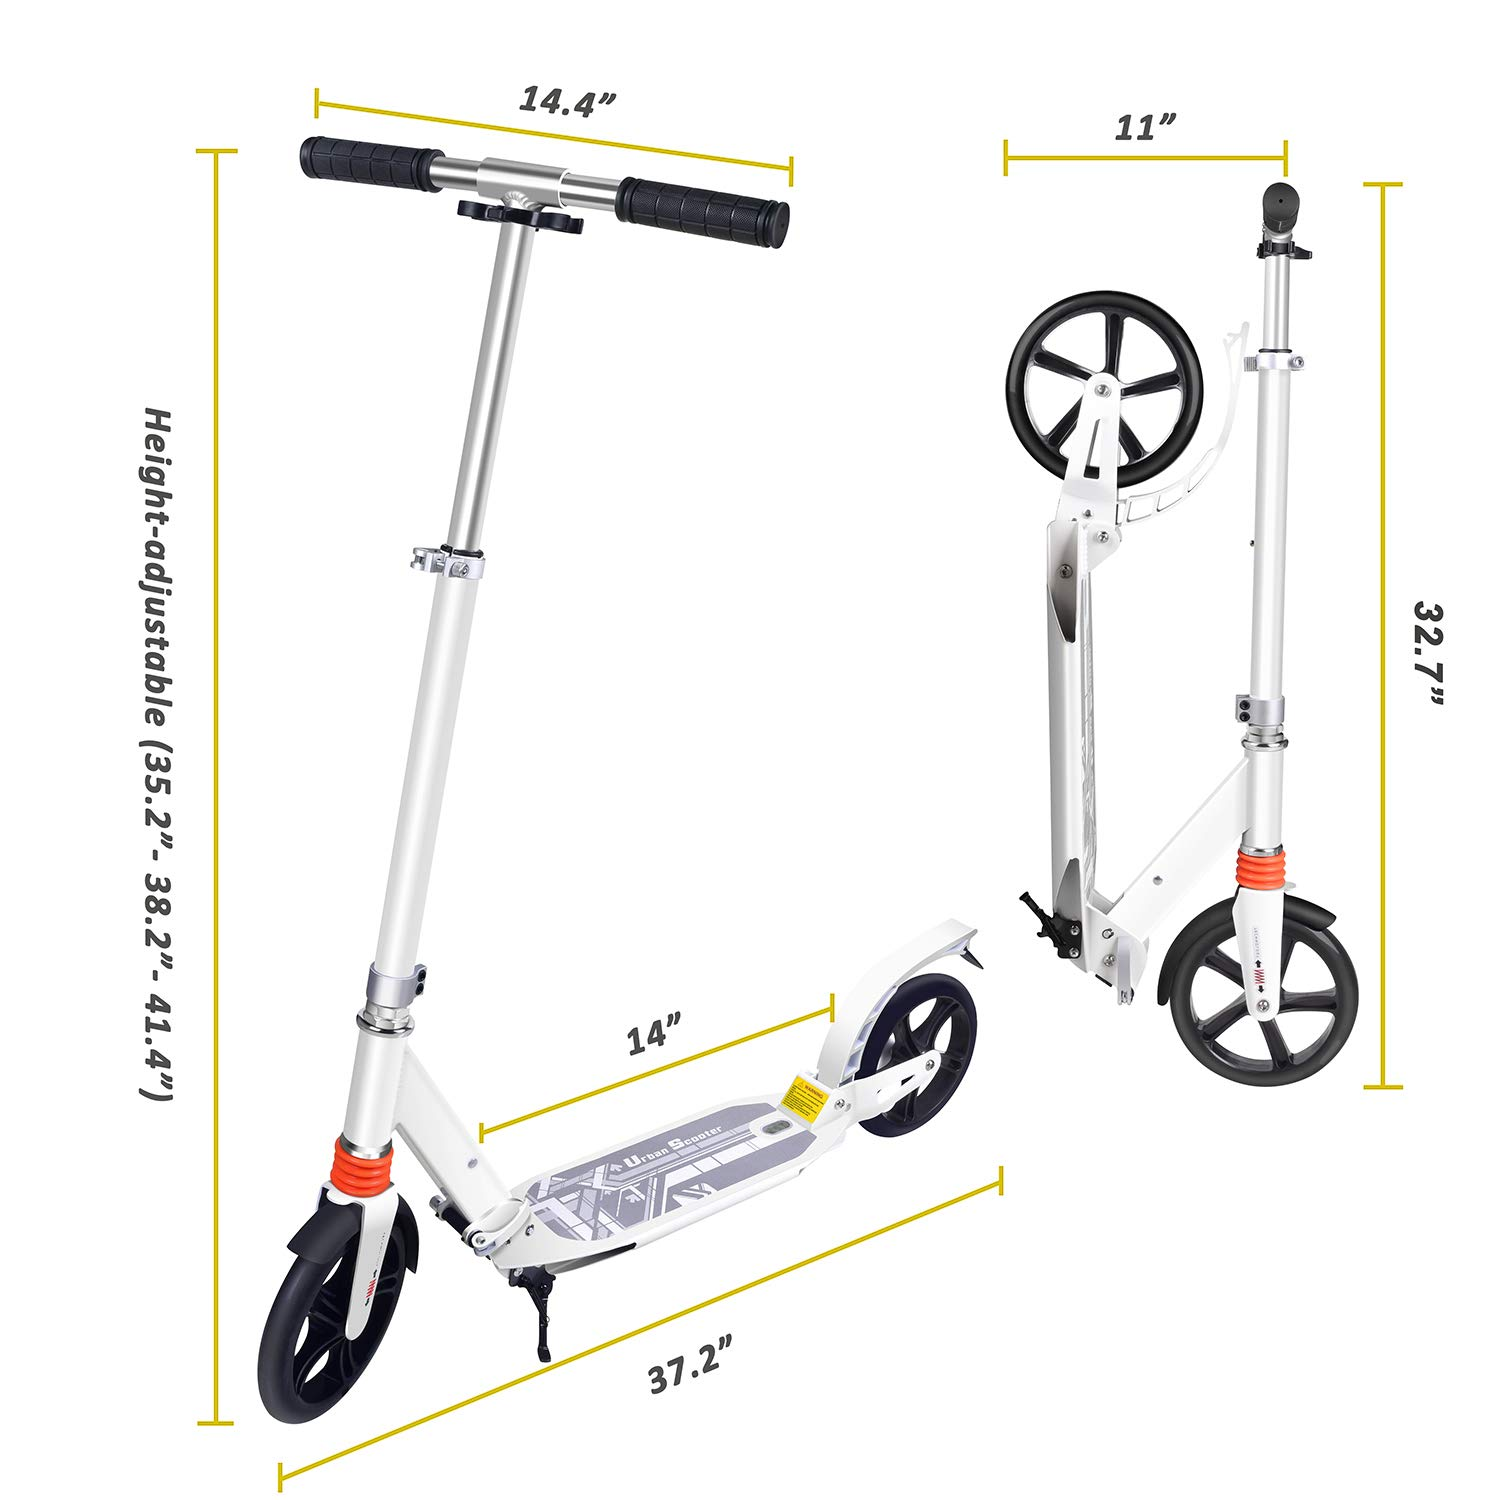 TABKEER Scooter for Adults Teens Aluminum Alloy Foldable Adult Scooter Adjustable Height Handlebars and Kickstand with 8 inches Big Wheels Lightweight Scooters Gift for Family